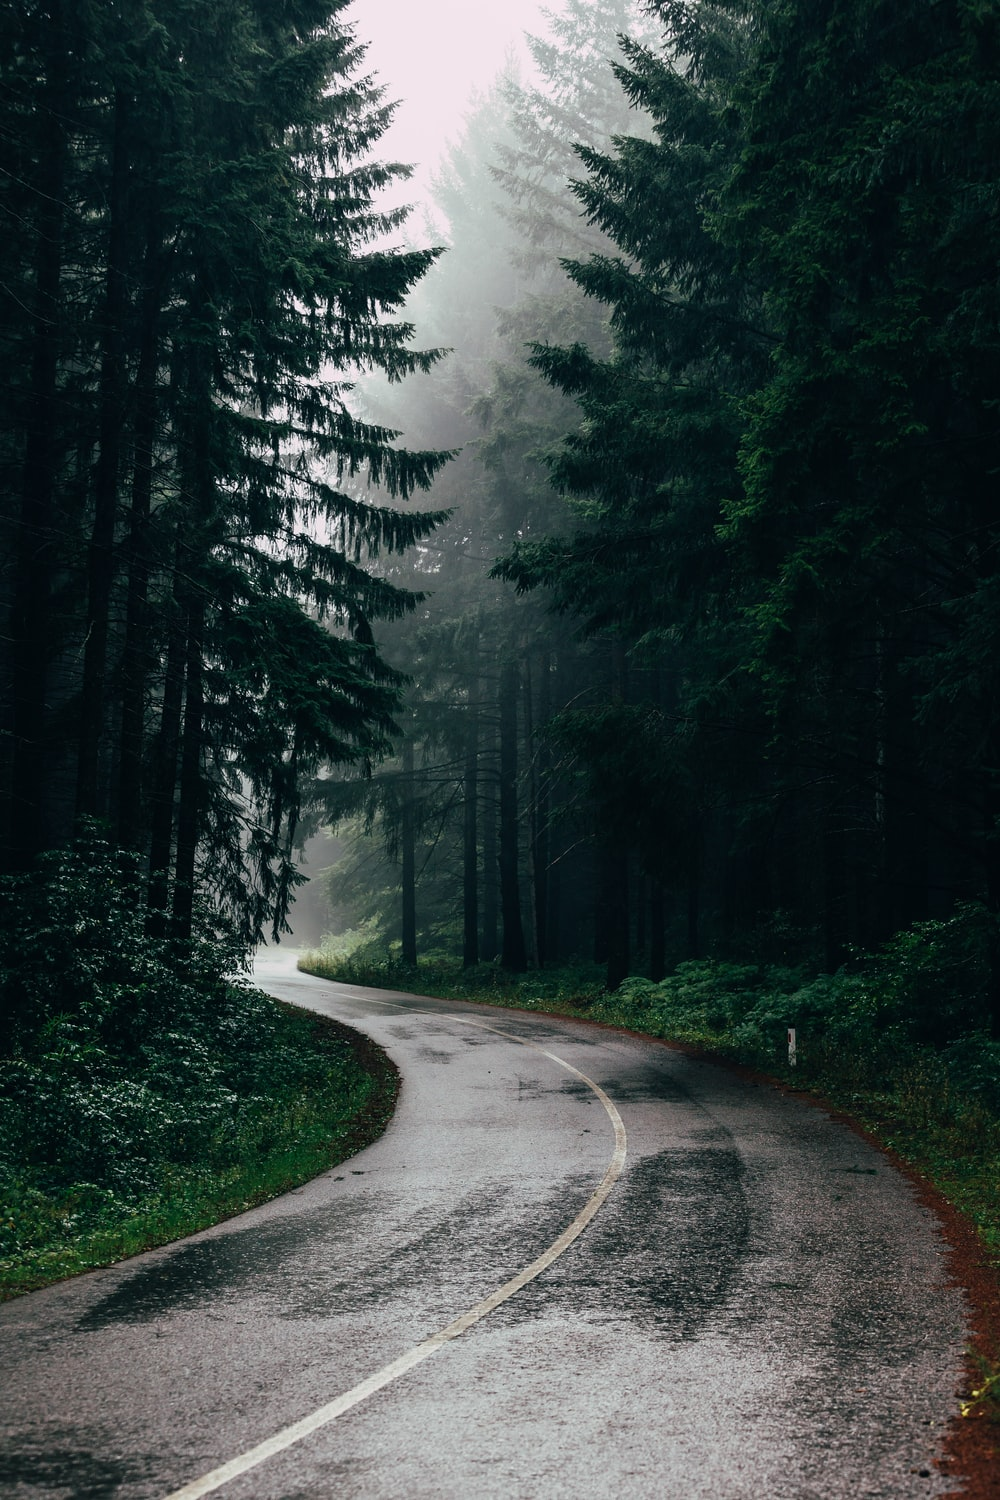 Rain Pictures Hd Download Free Images Stock Photos On Unsplash